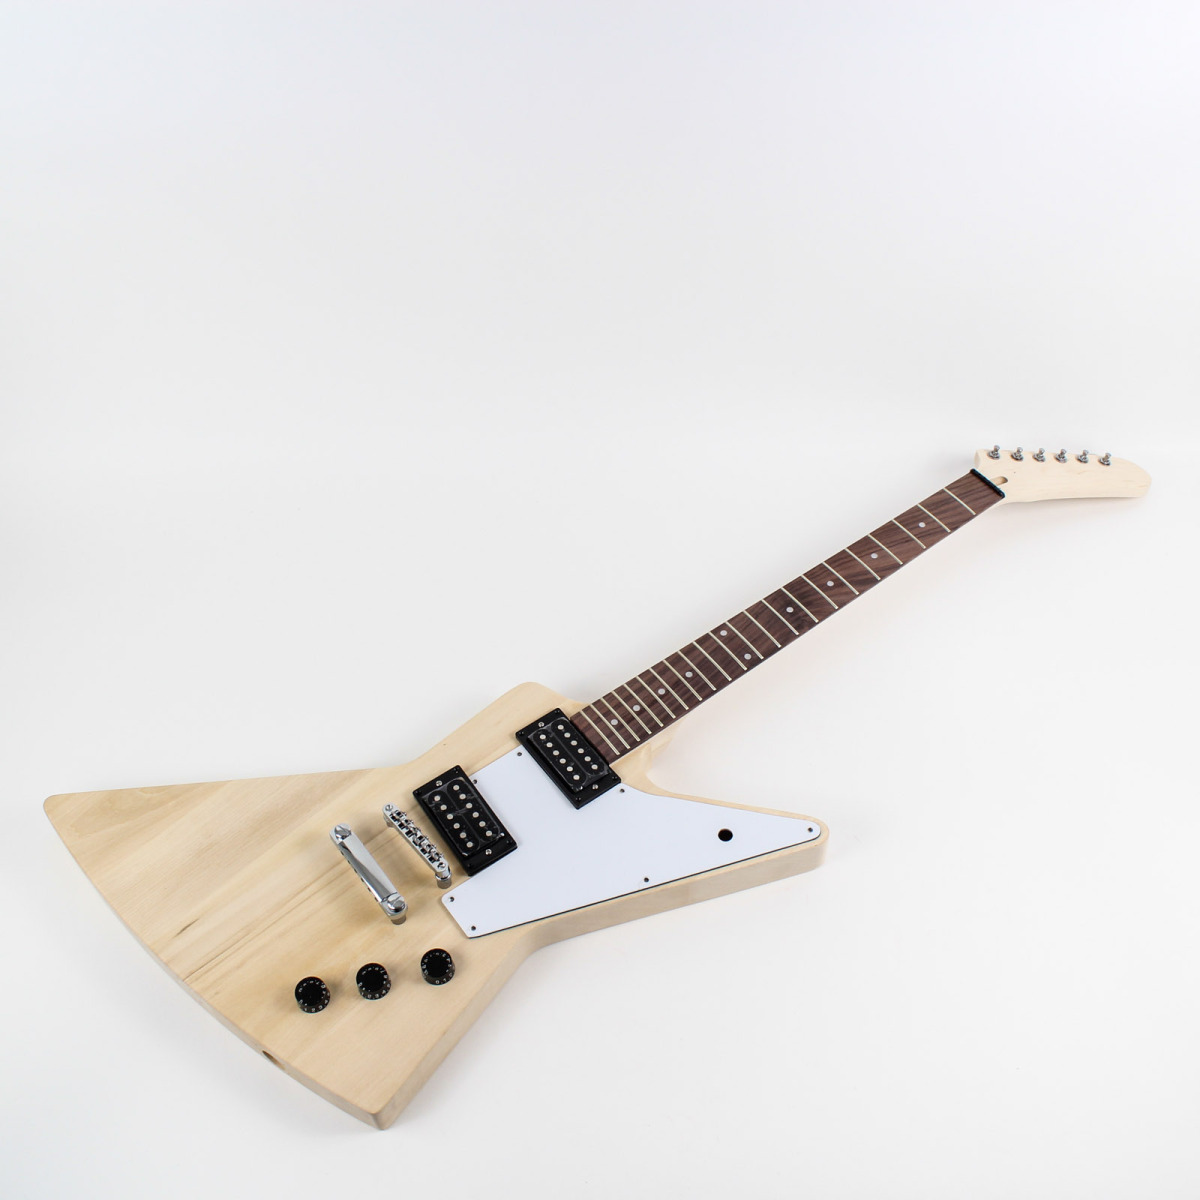 gibson explorer guitar kit left handed diy guitars. Black Bedroom Furniture Sets. Home Design Ideas